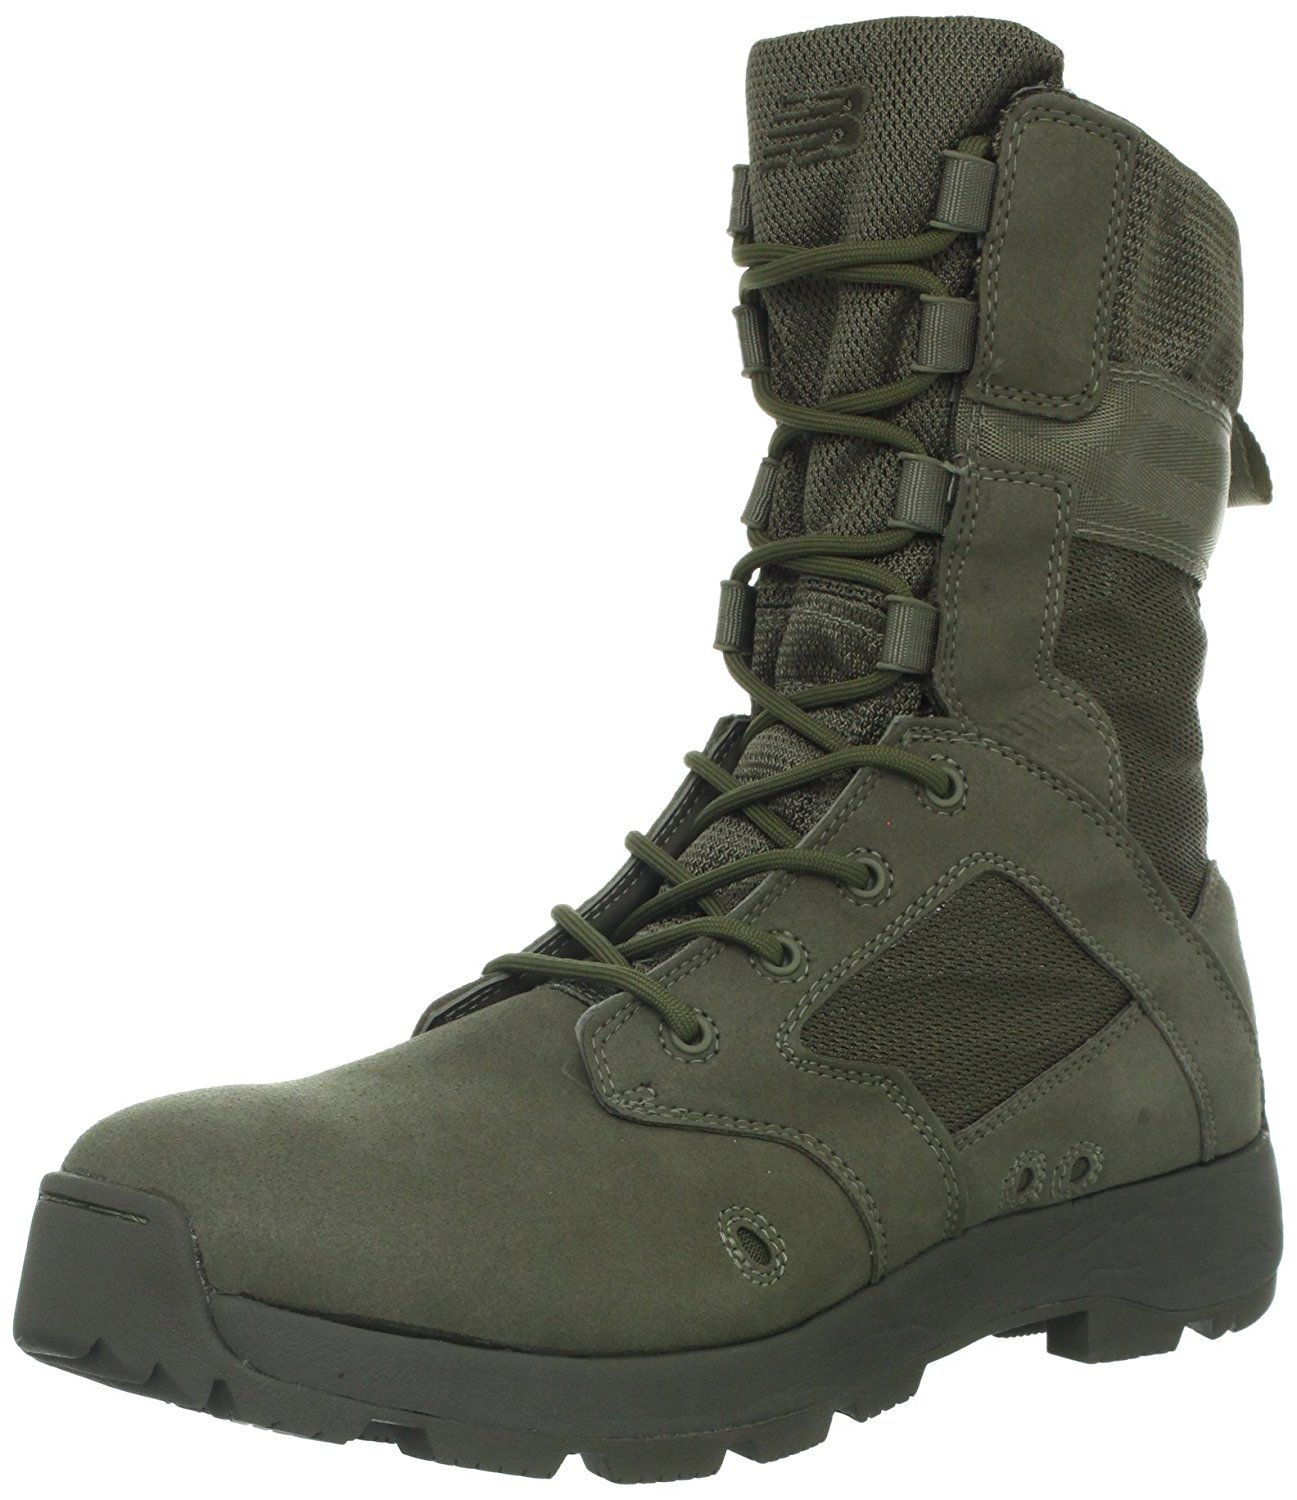 f494aa21ab0 New Balance Tactical Men's Desertlite 8-Inch Boot,Sage Green,6 2E US ...